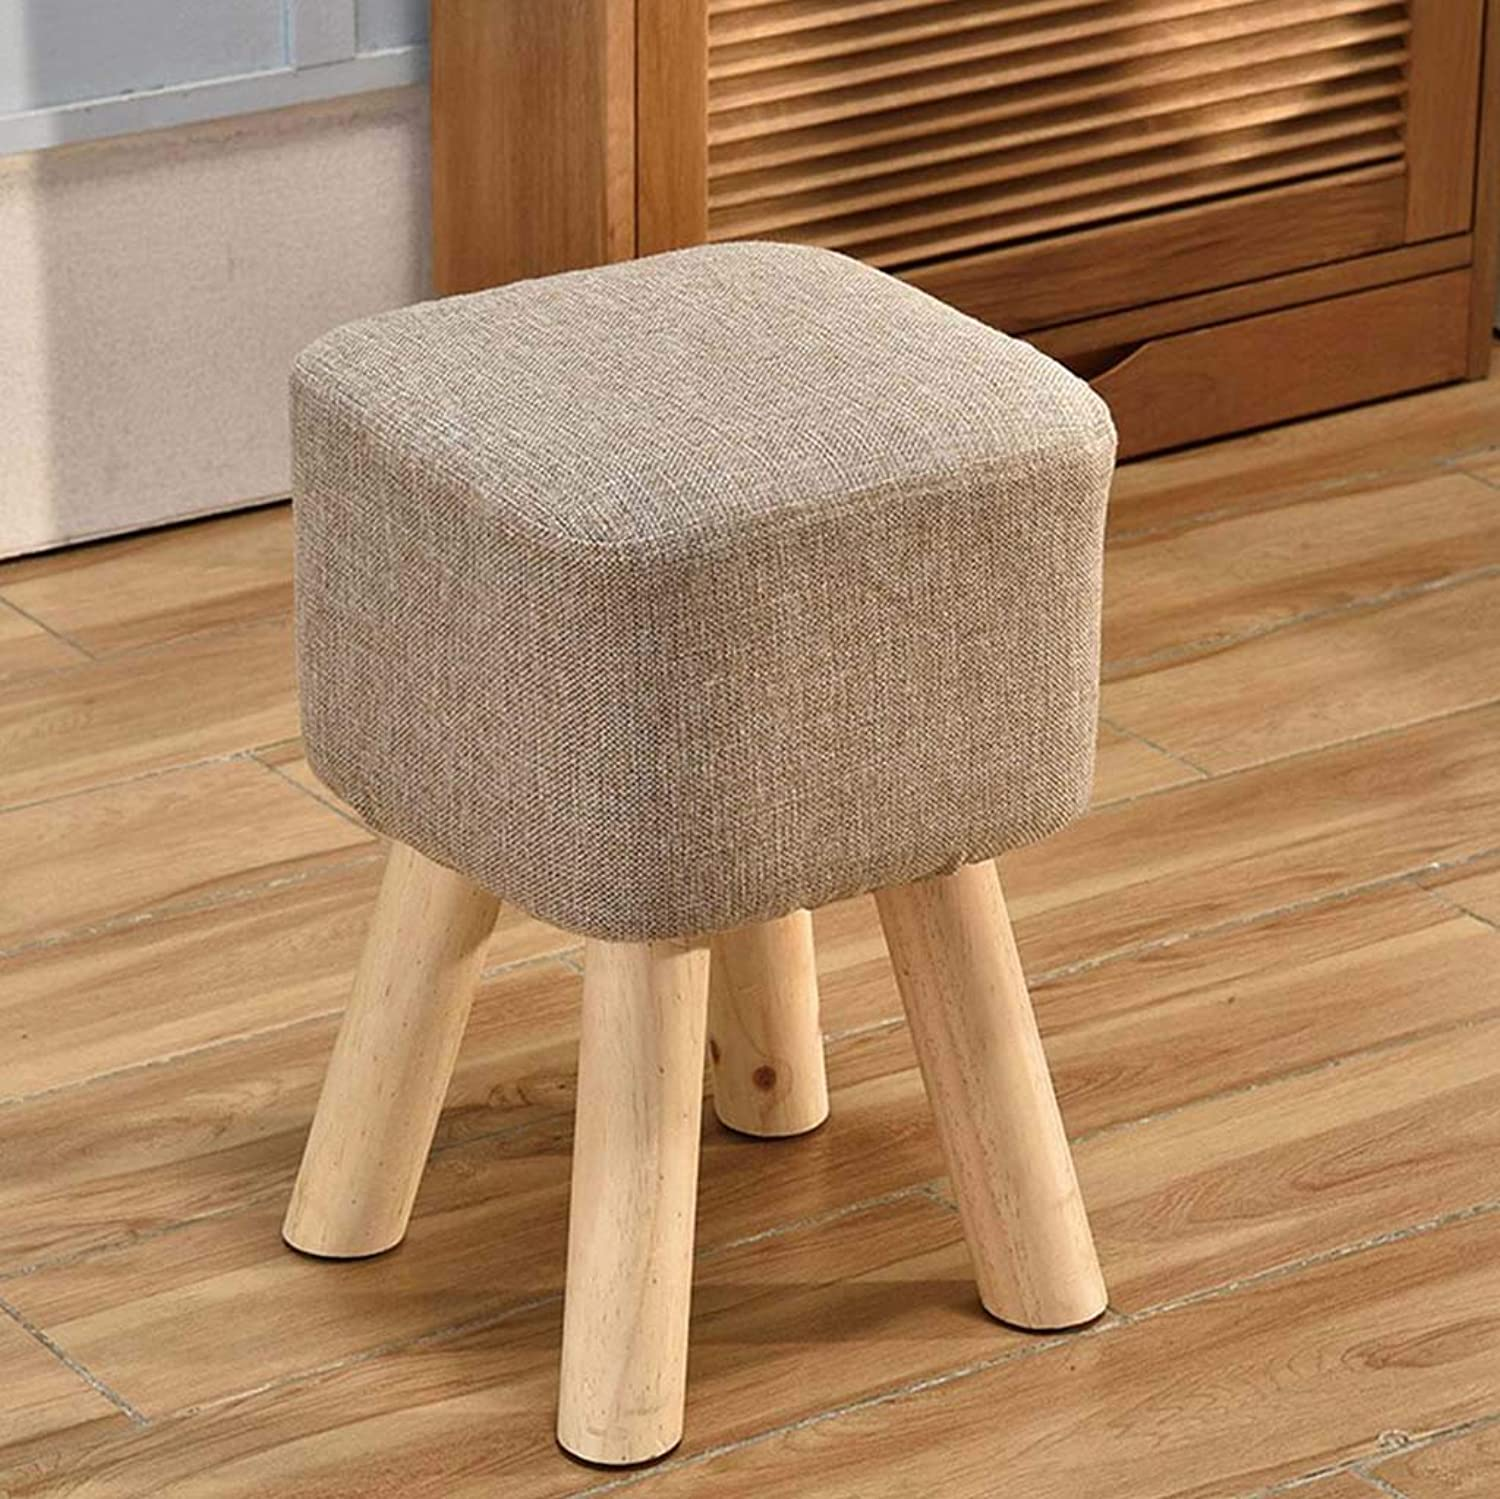 Solid Wood Home Heightening Stool Living Room shoes Bench Adult Square Stool Fabric Sofa Bench Bench,B